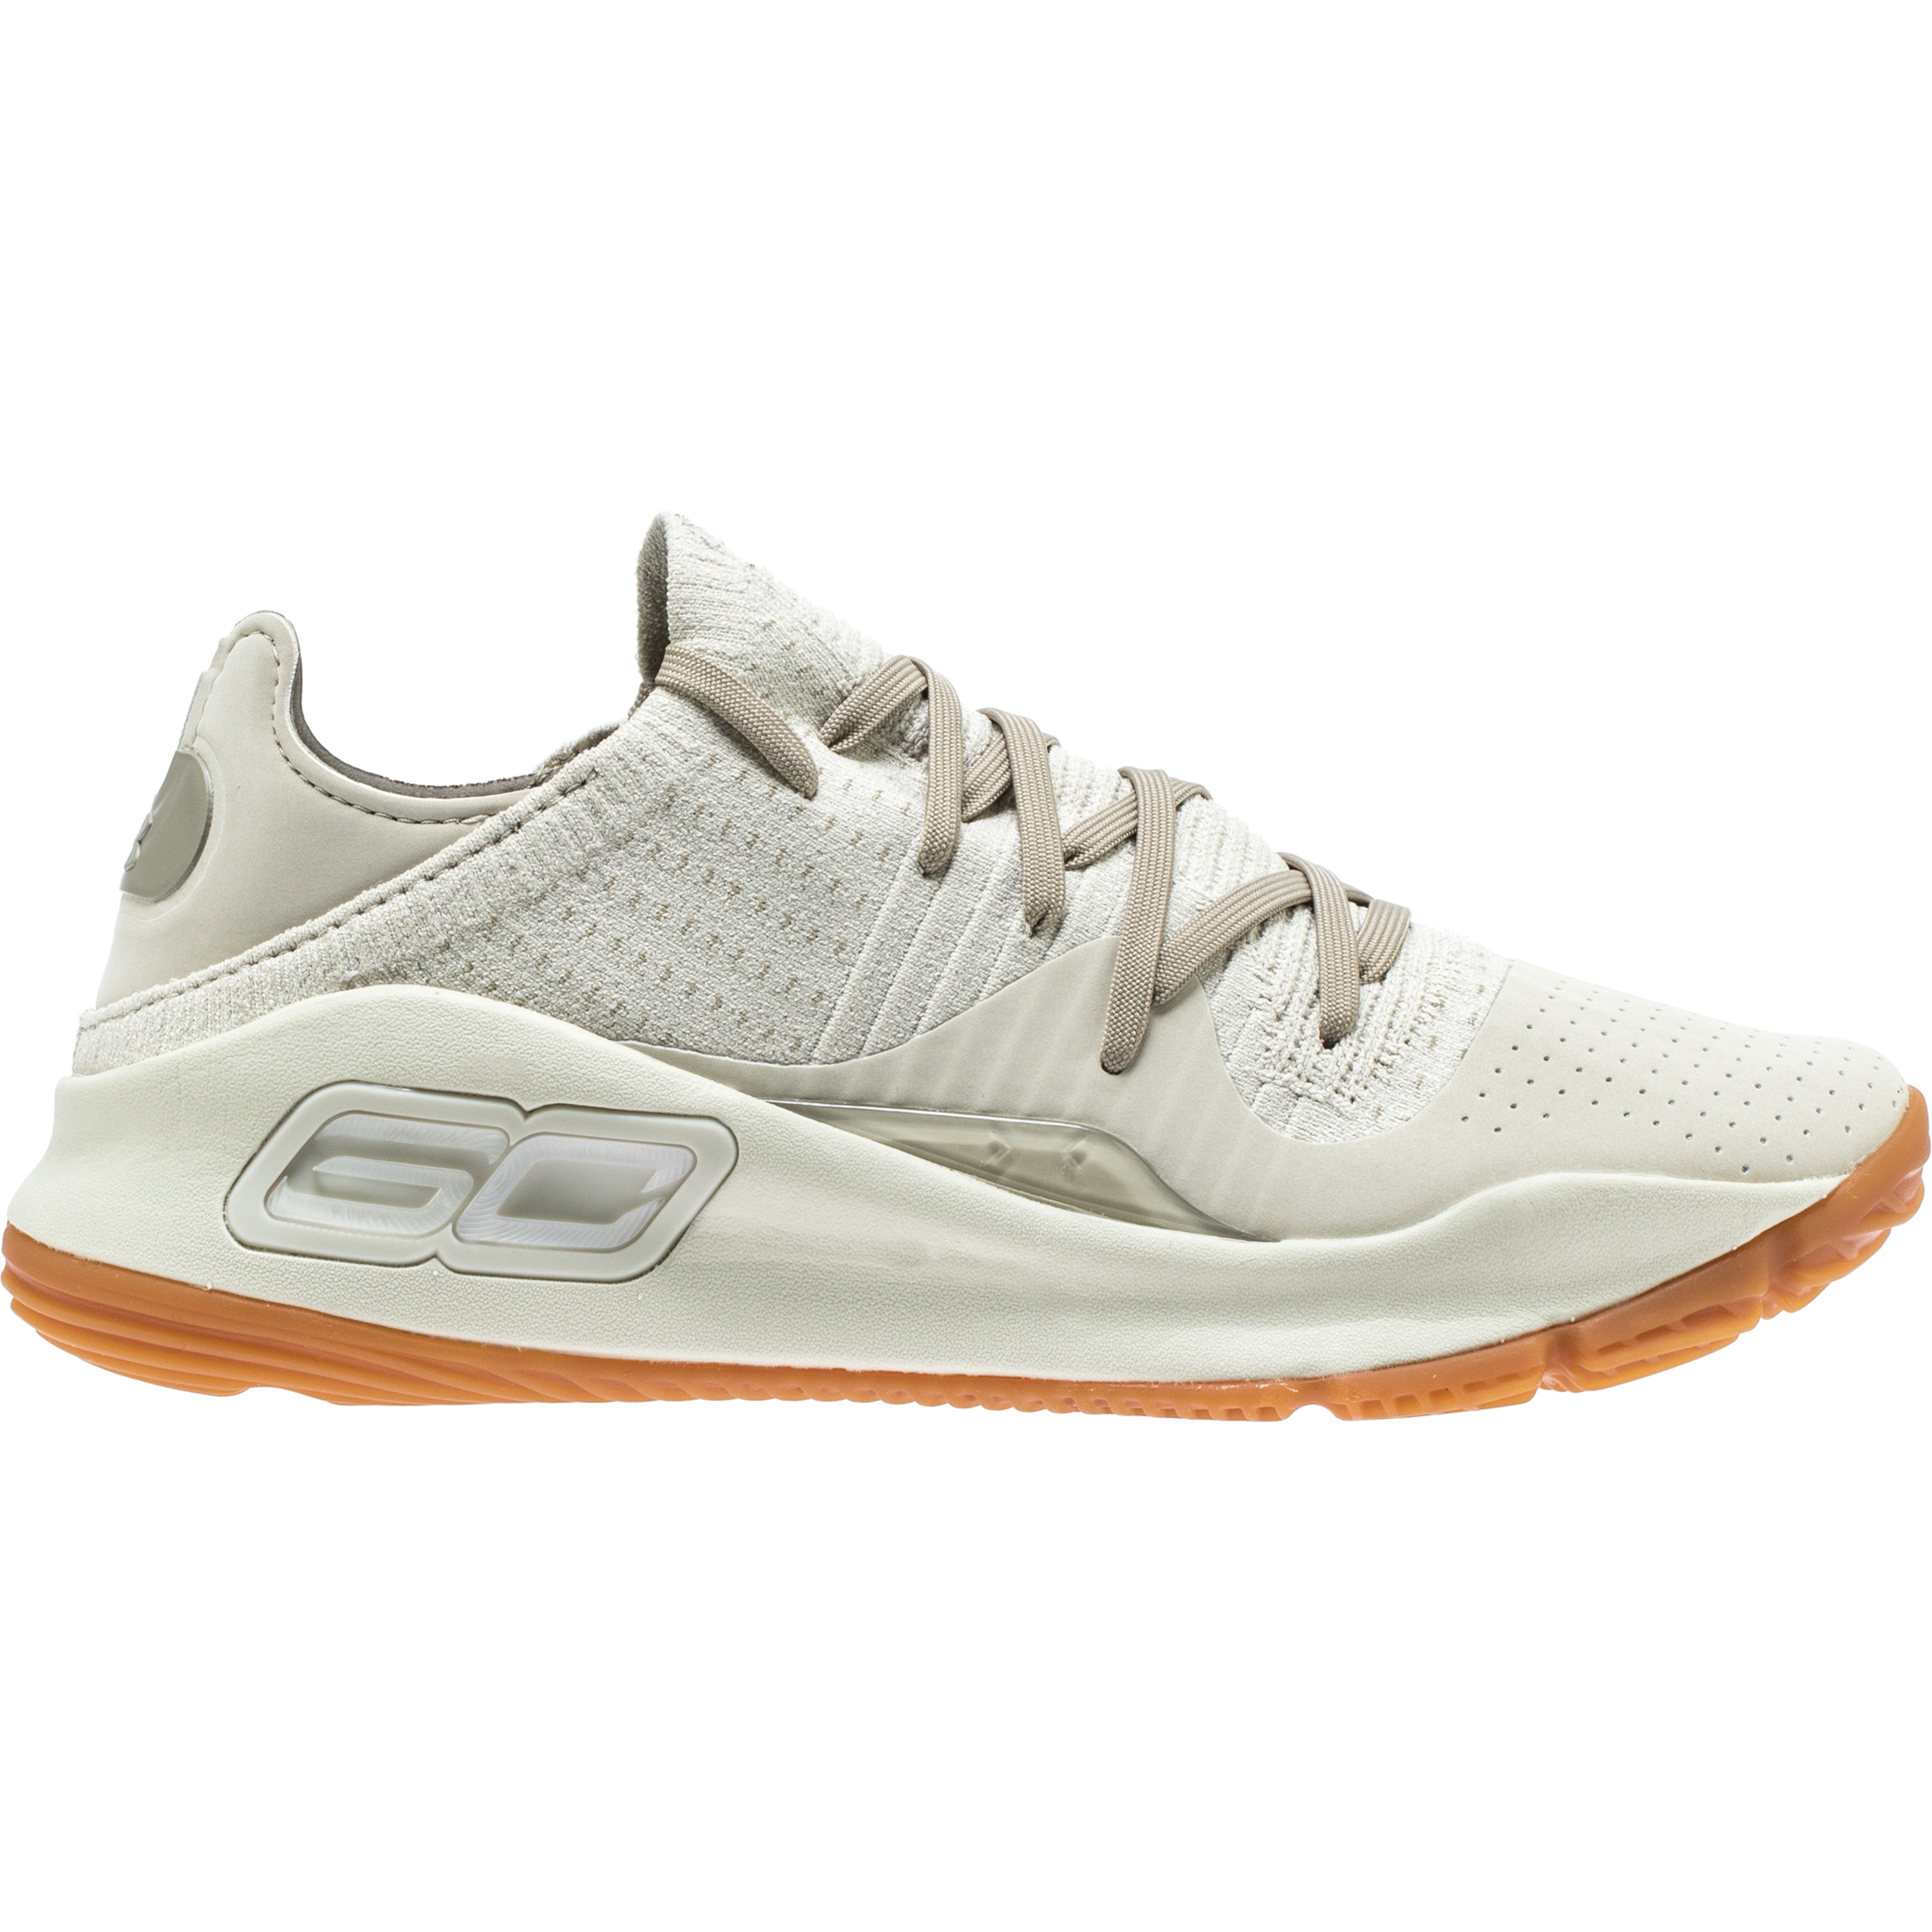 Under Armour Curry 4 Low Baja (3000083-103)